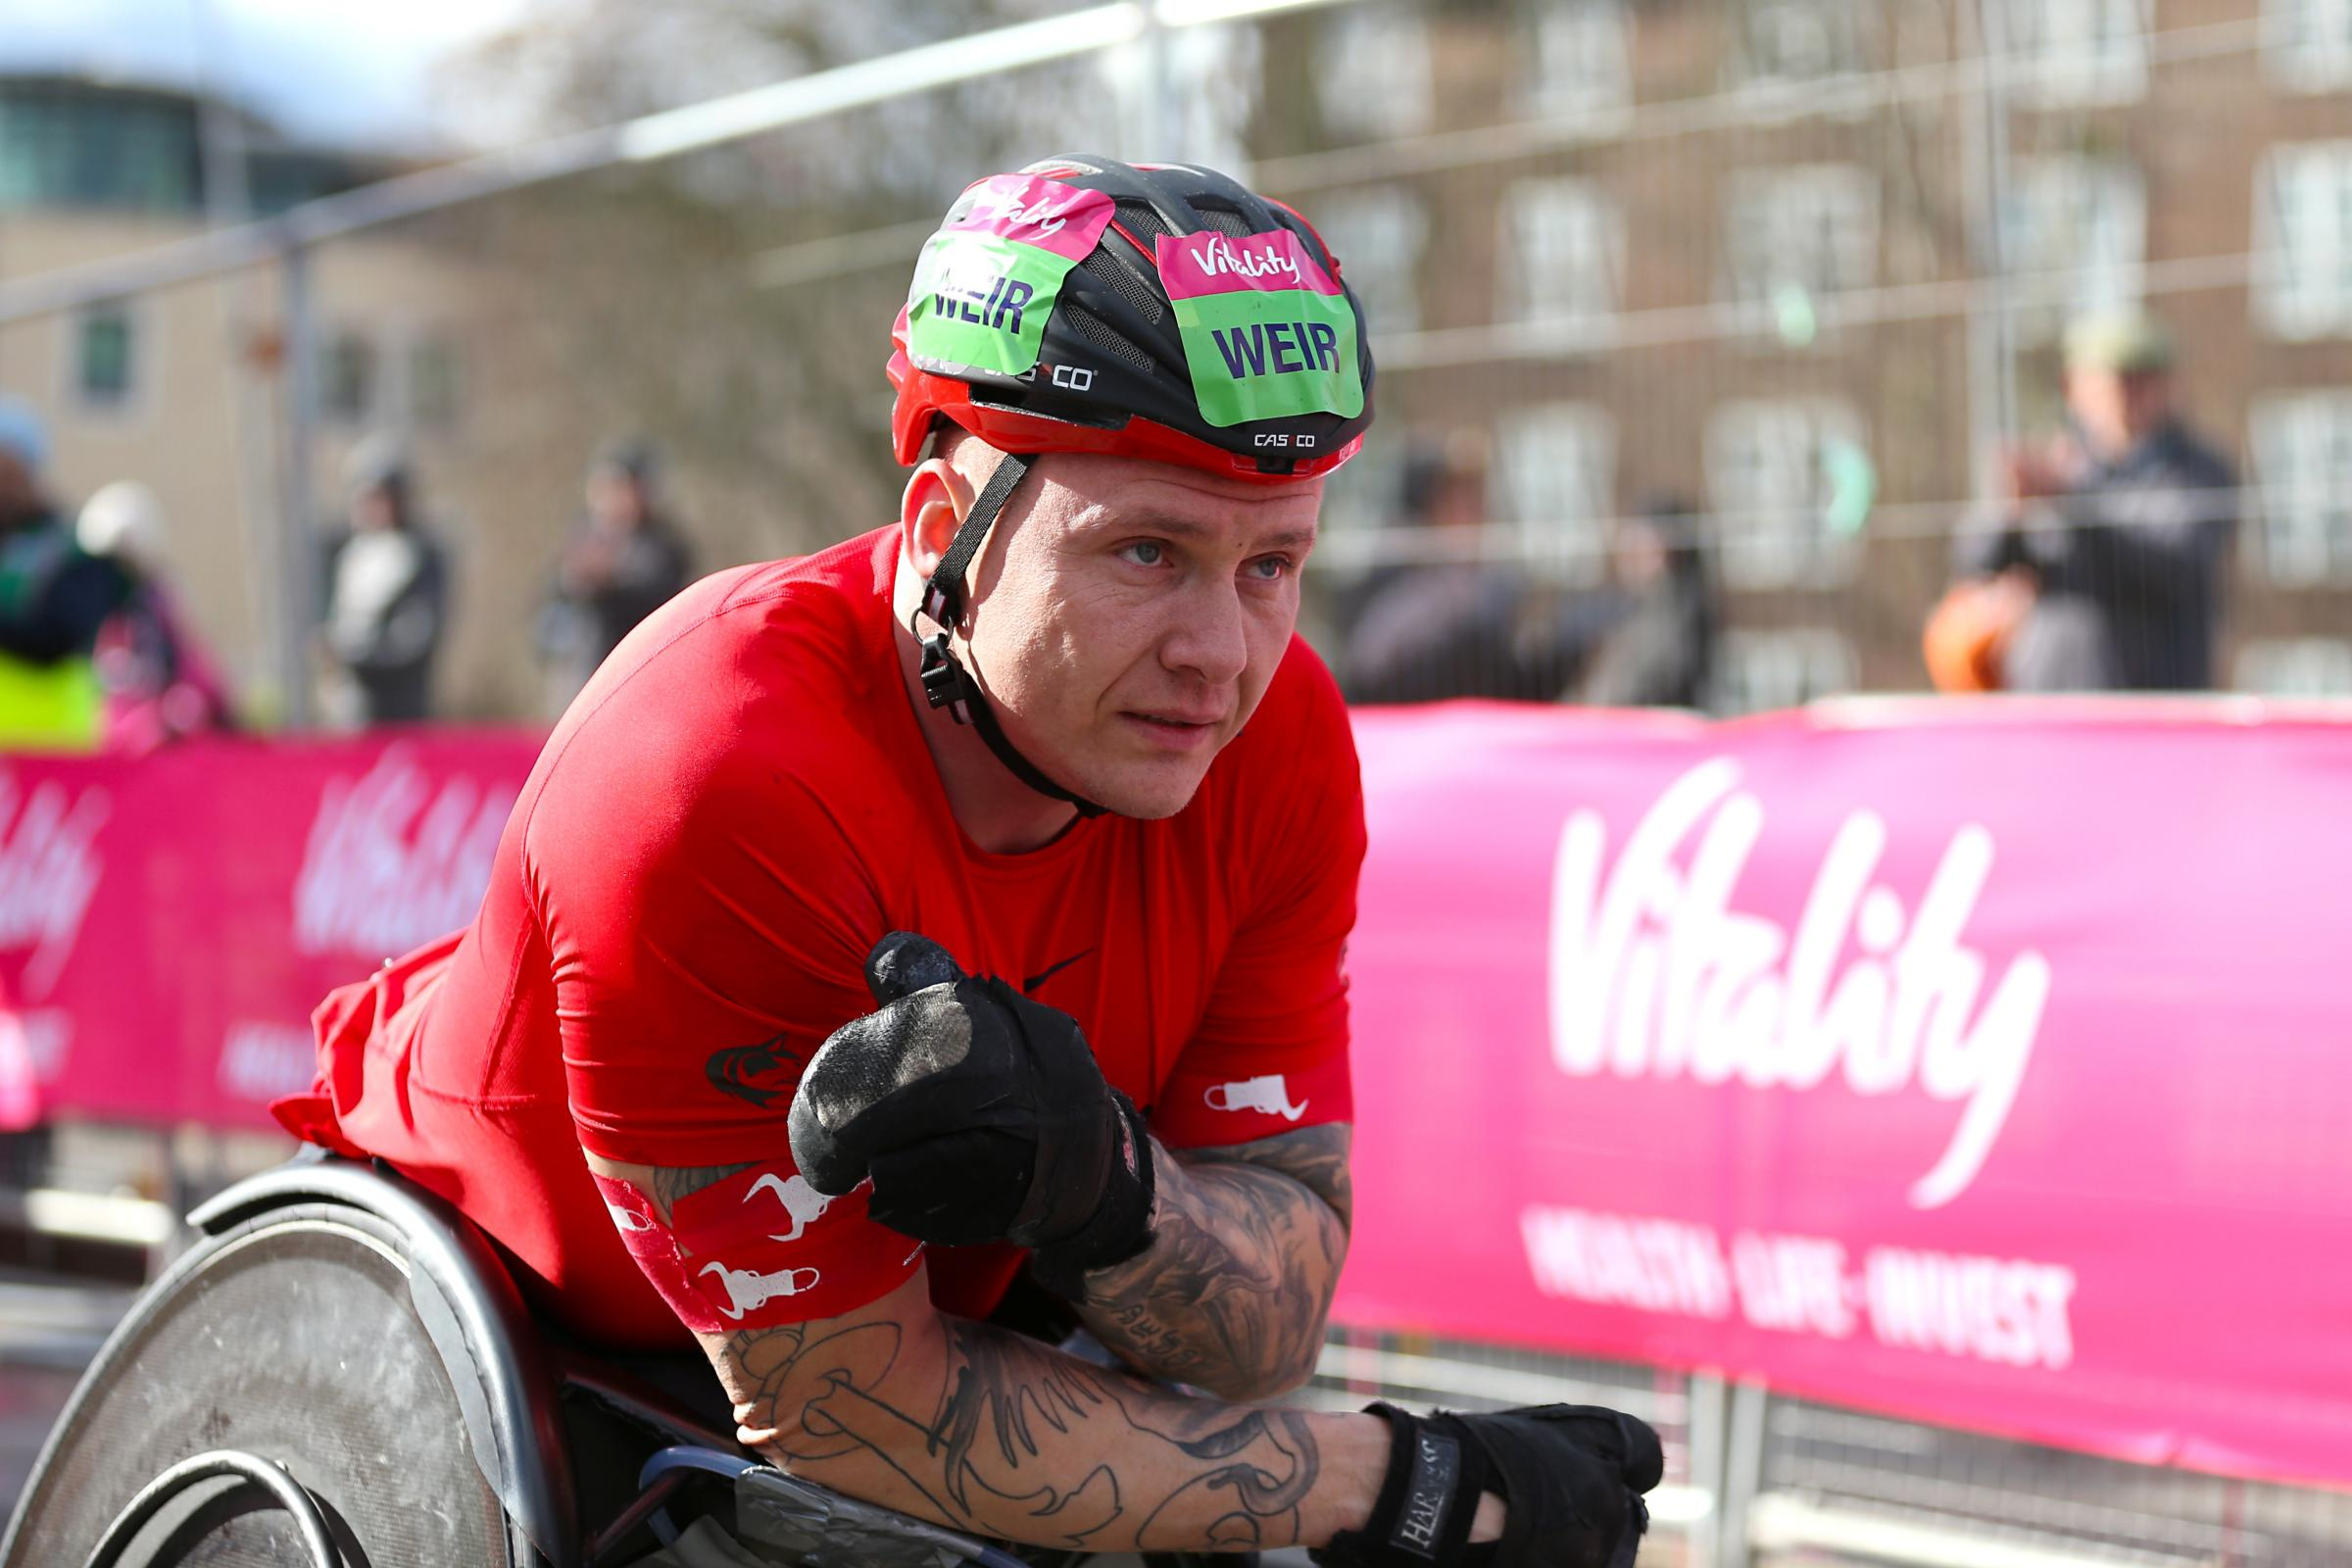 David Weir is looking to win the London Marathon again